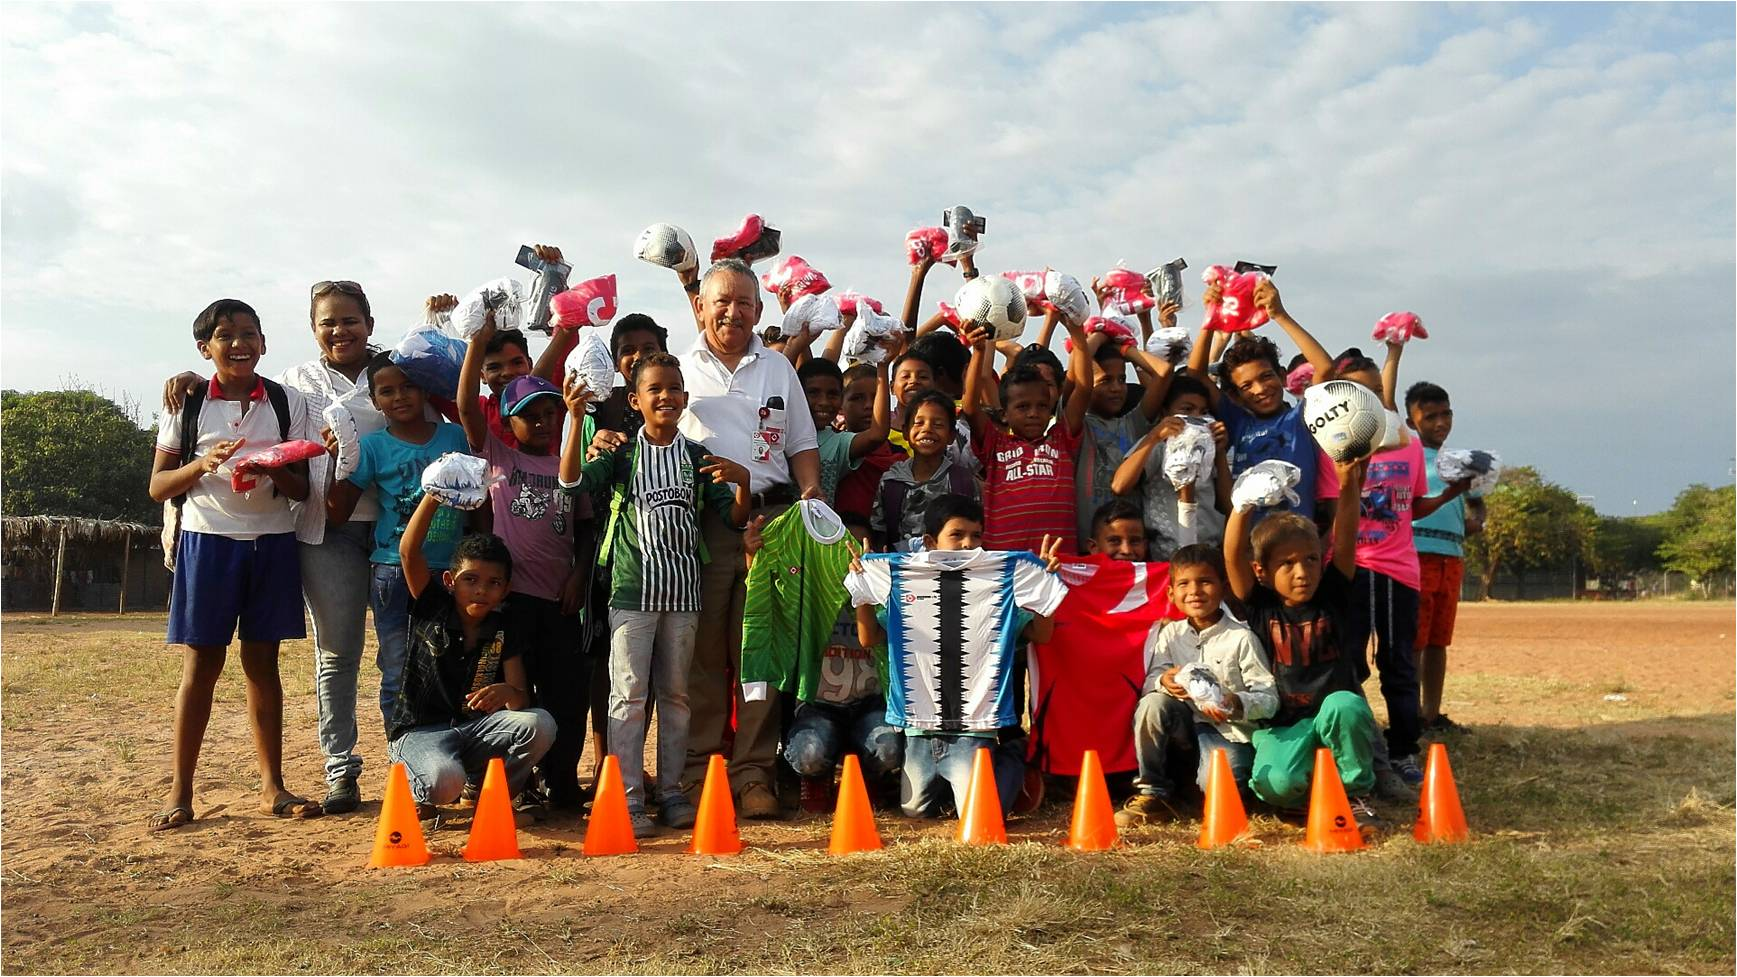 * Rafael García, Drummond Ltd.'s Coordinator of Community Relations in Cesar, together with the children of the sports foundations of the corregimiento of La Loma